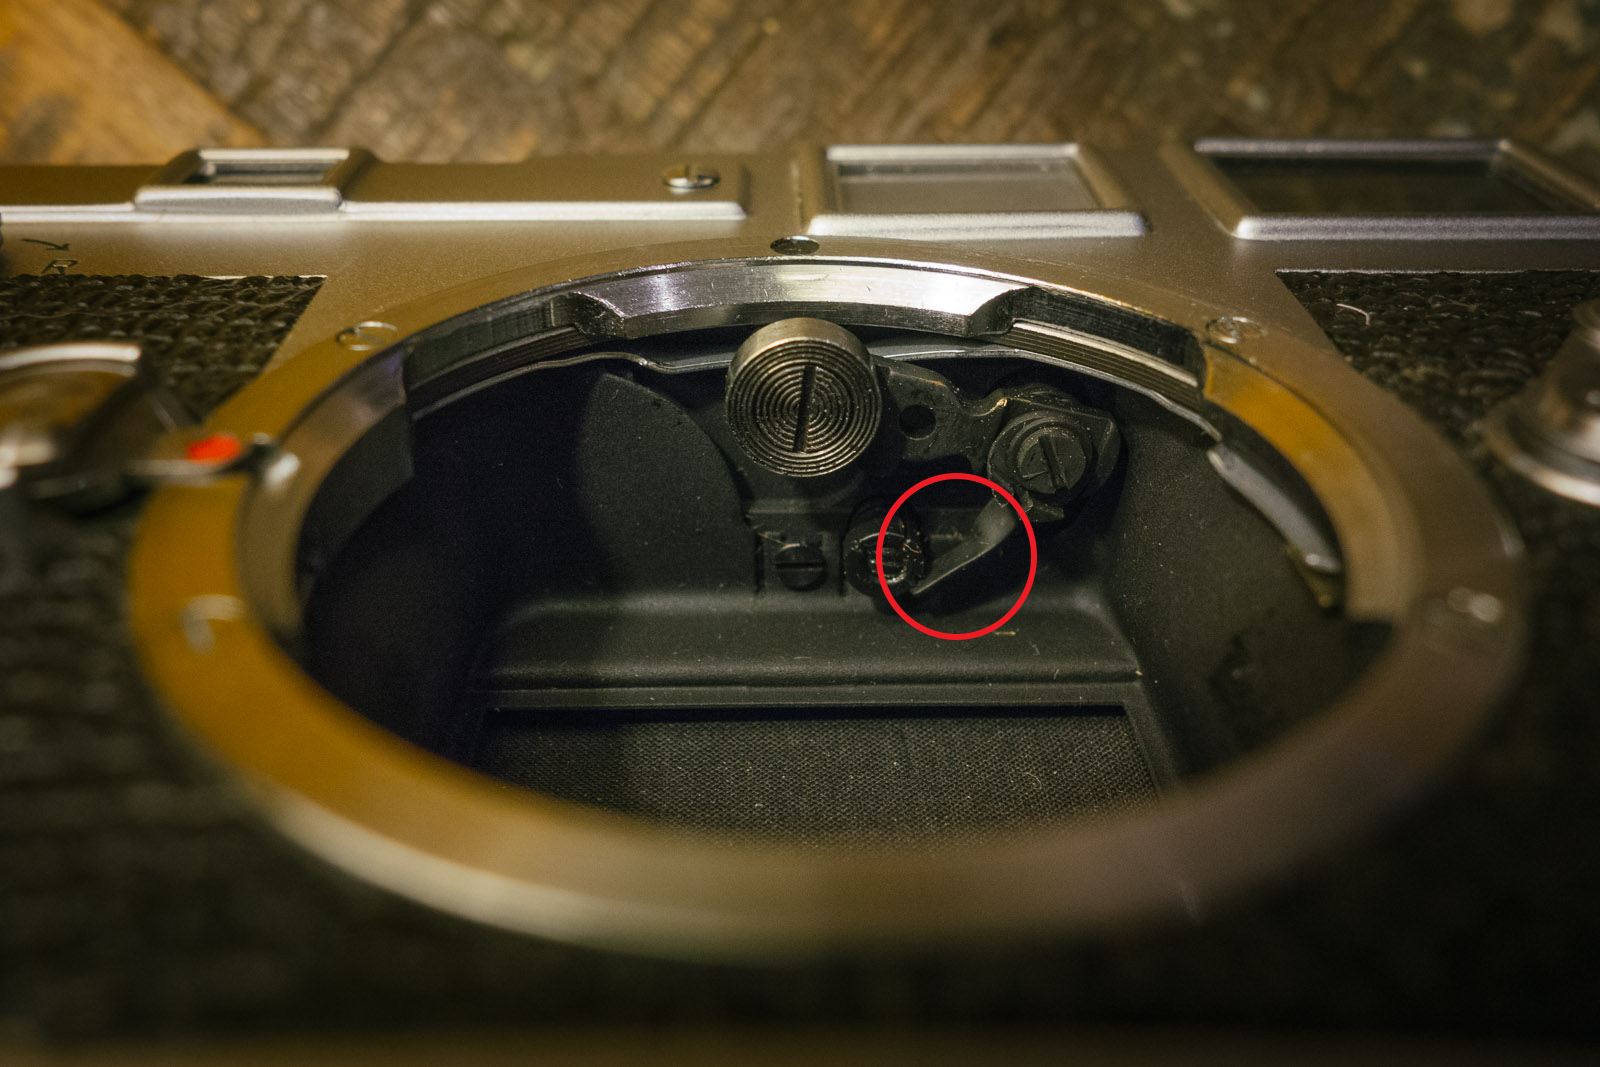 Modifying a Leica M3 to close focus past 1 metre